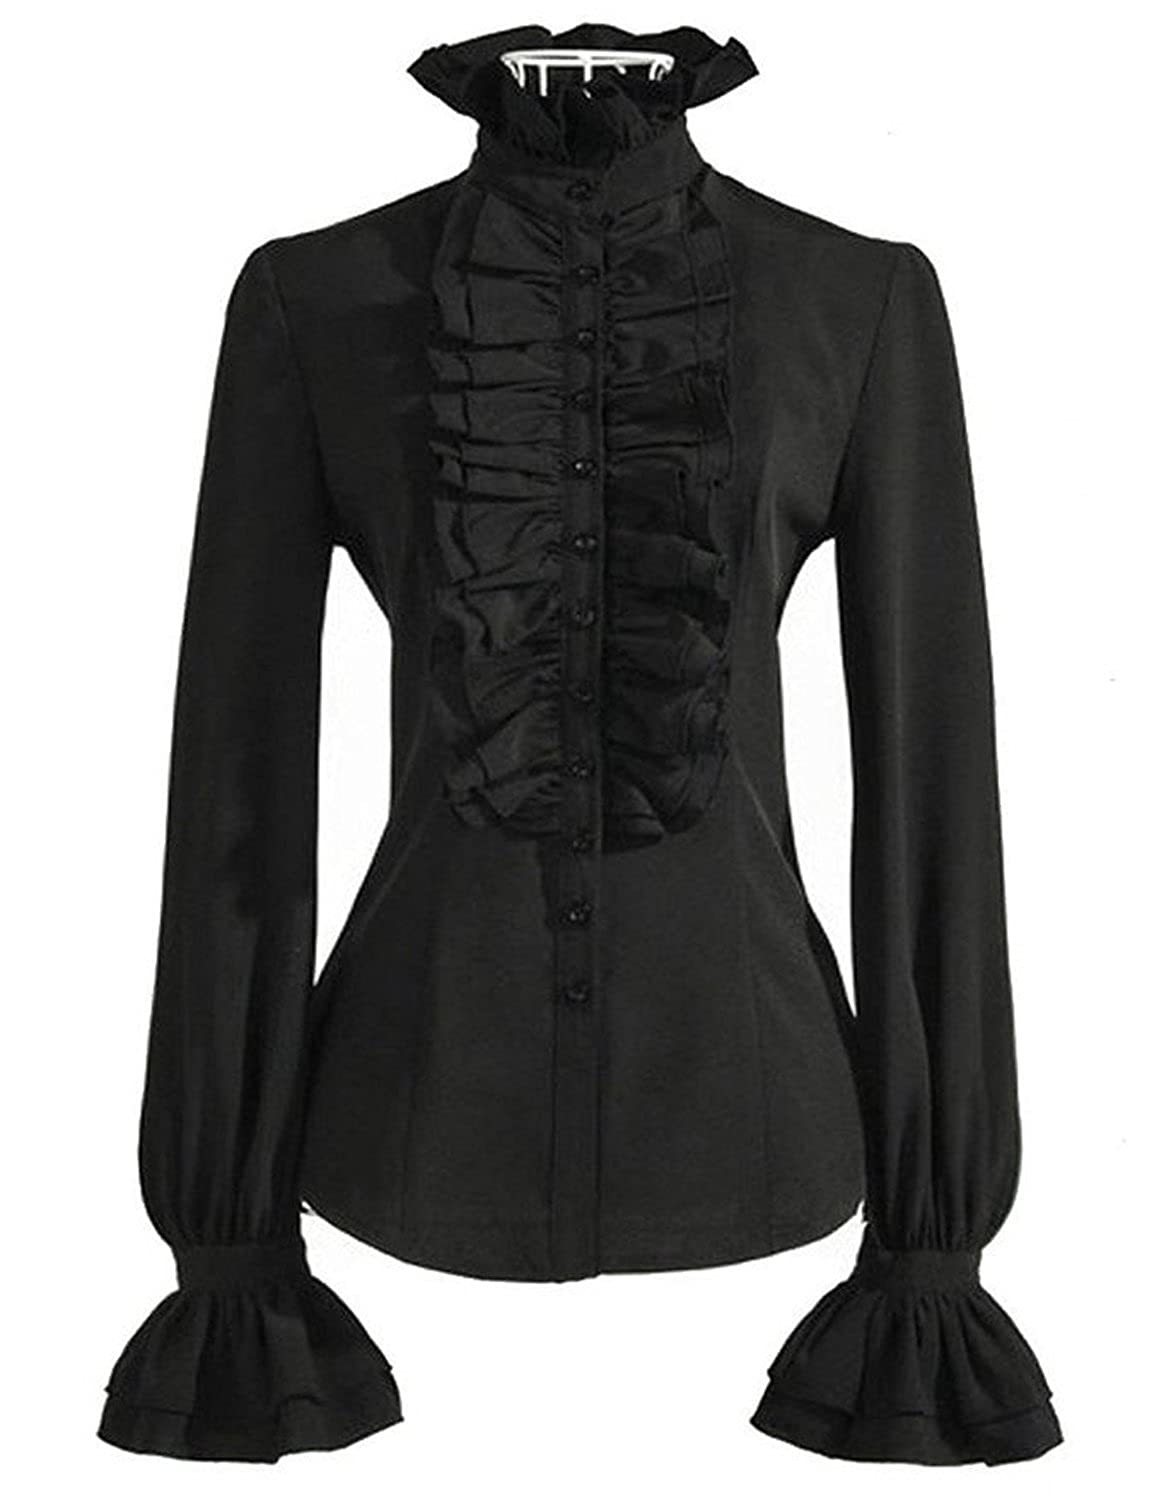 Victorian Dresses, Capelets, Hoop Skirts, Blouses Stand-Up Collar Lotus Ruffle Shirts Blouse $21.99 AT vintagedancer.com